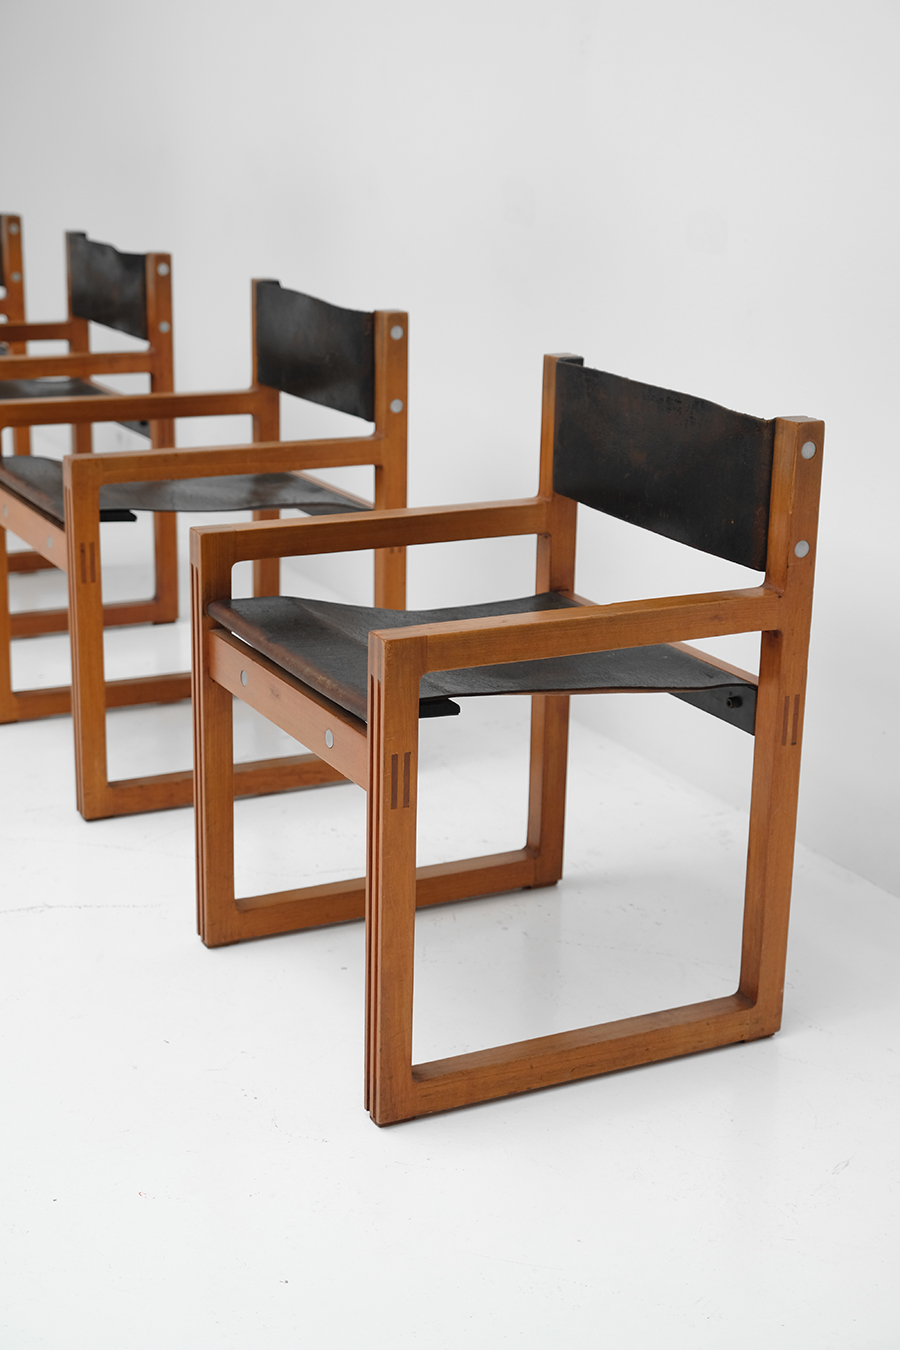 Christophe Gevers Chairs for De Coeneimage 4